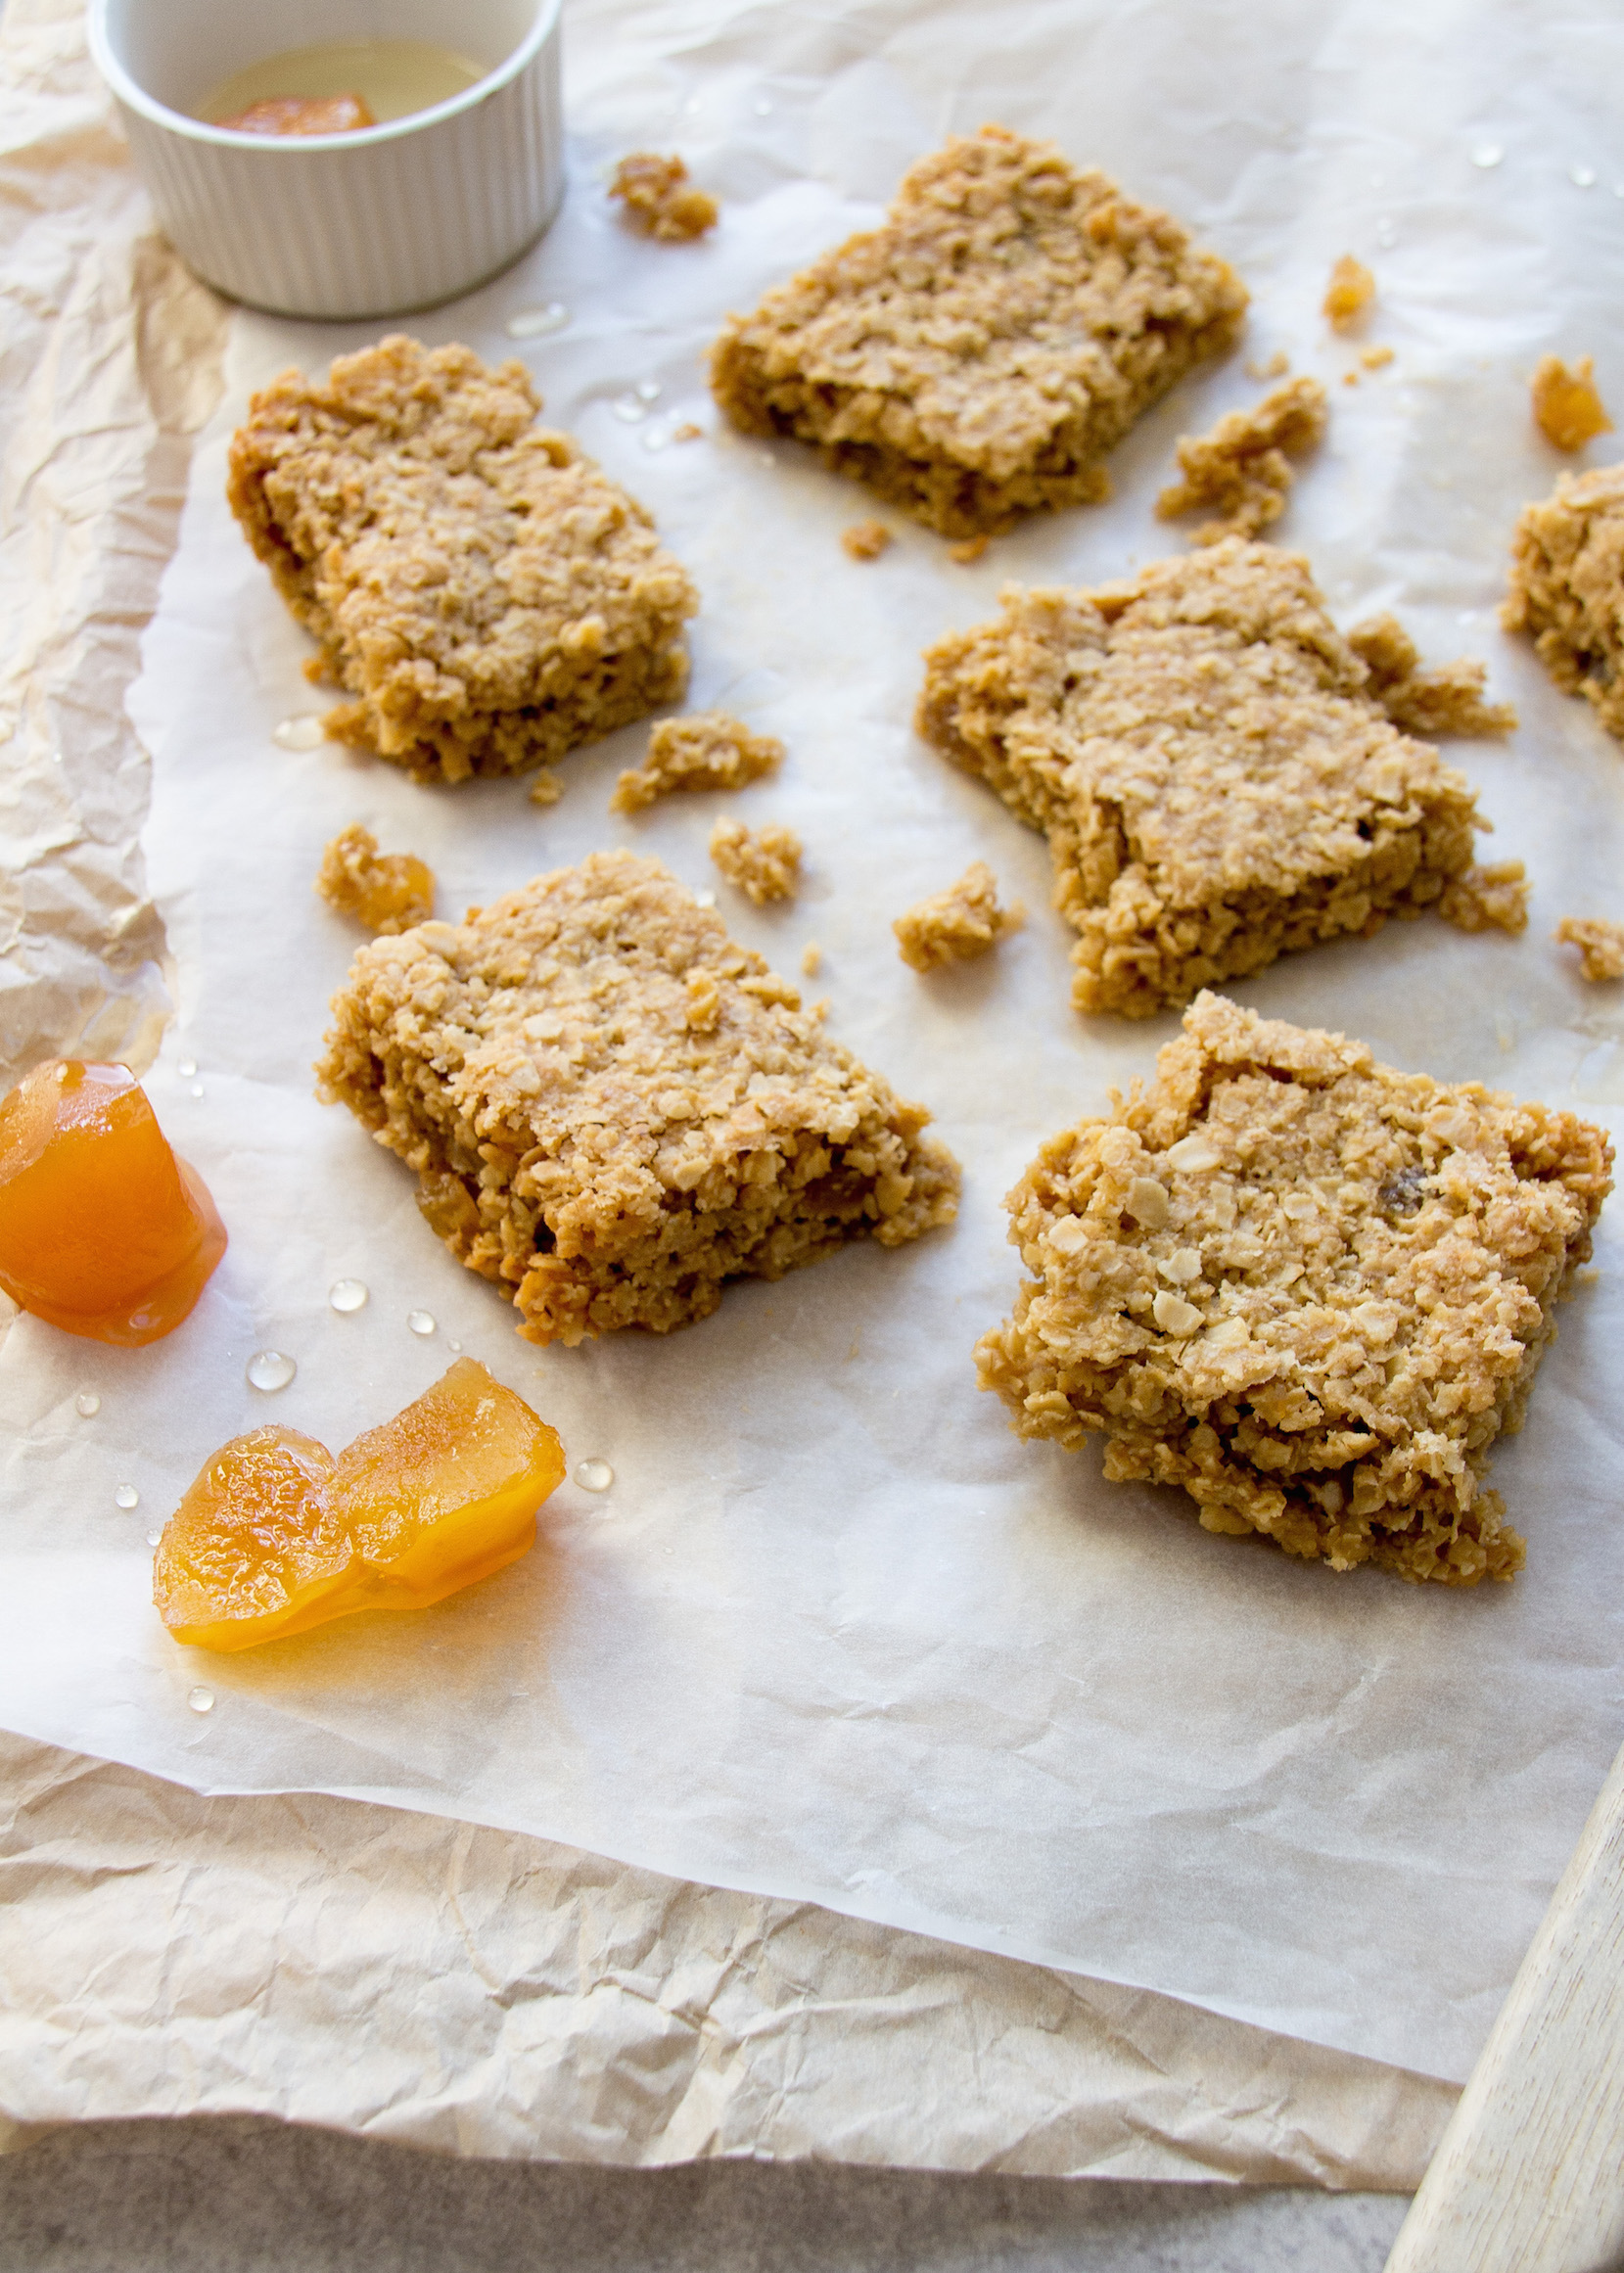 Low FODMAP chewy ginger flapjacks